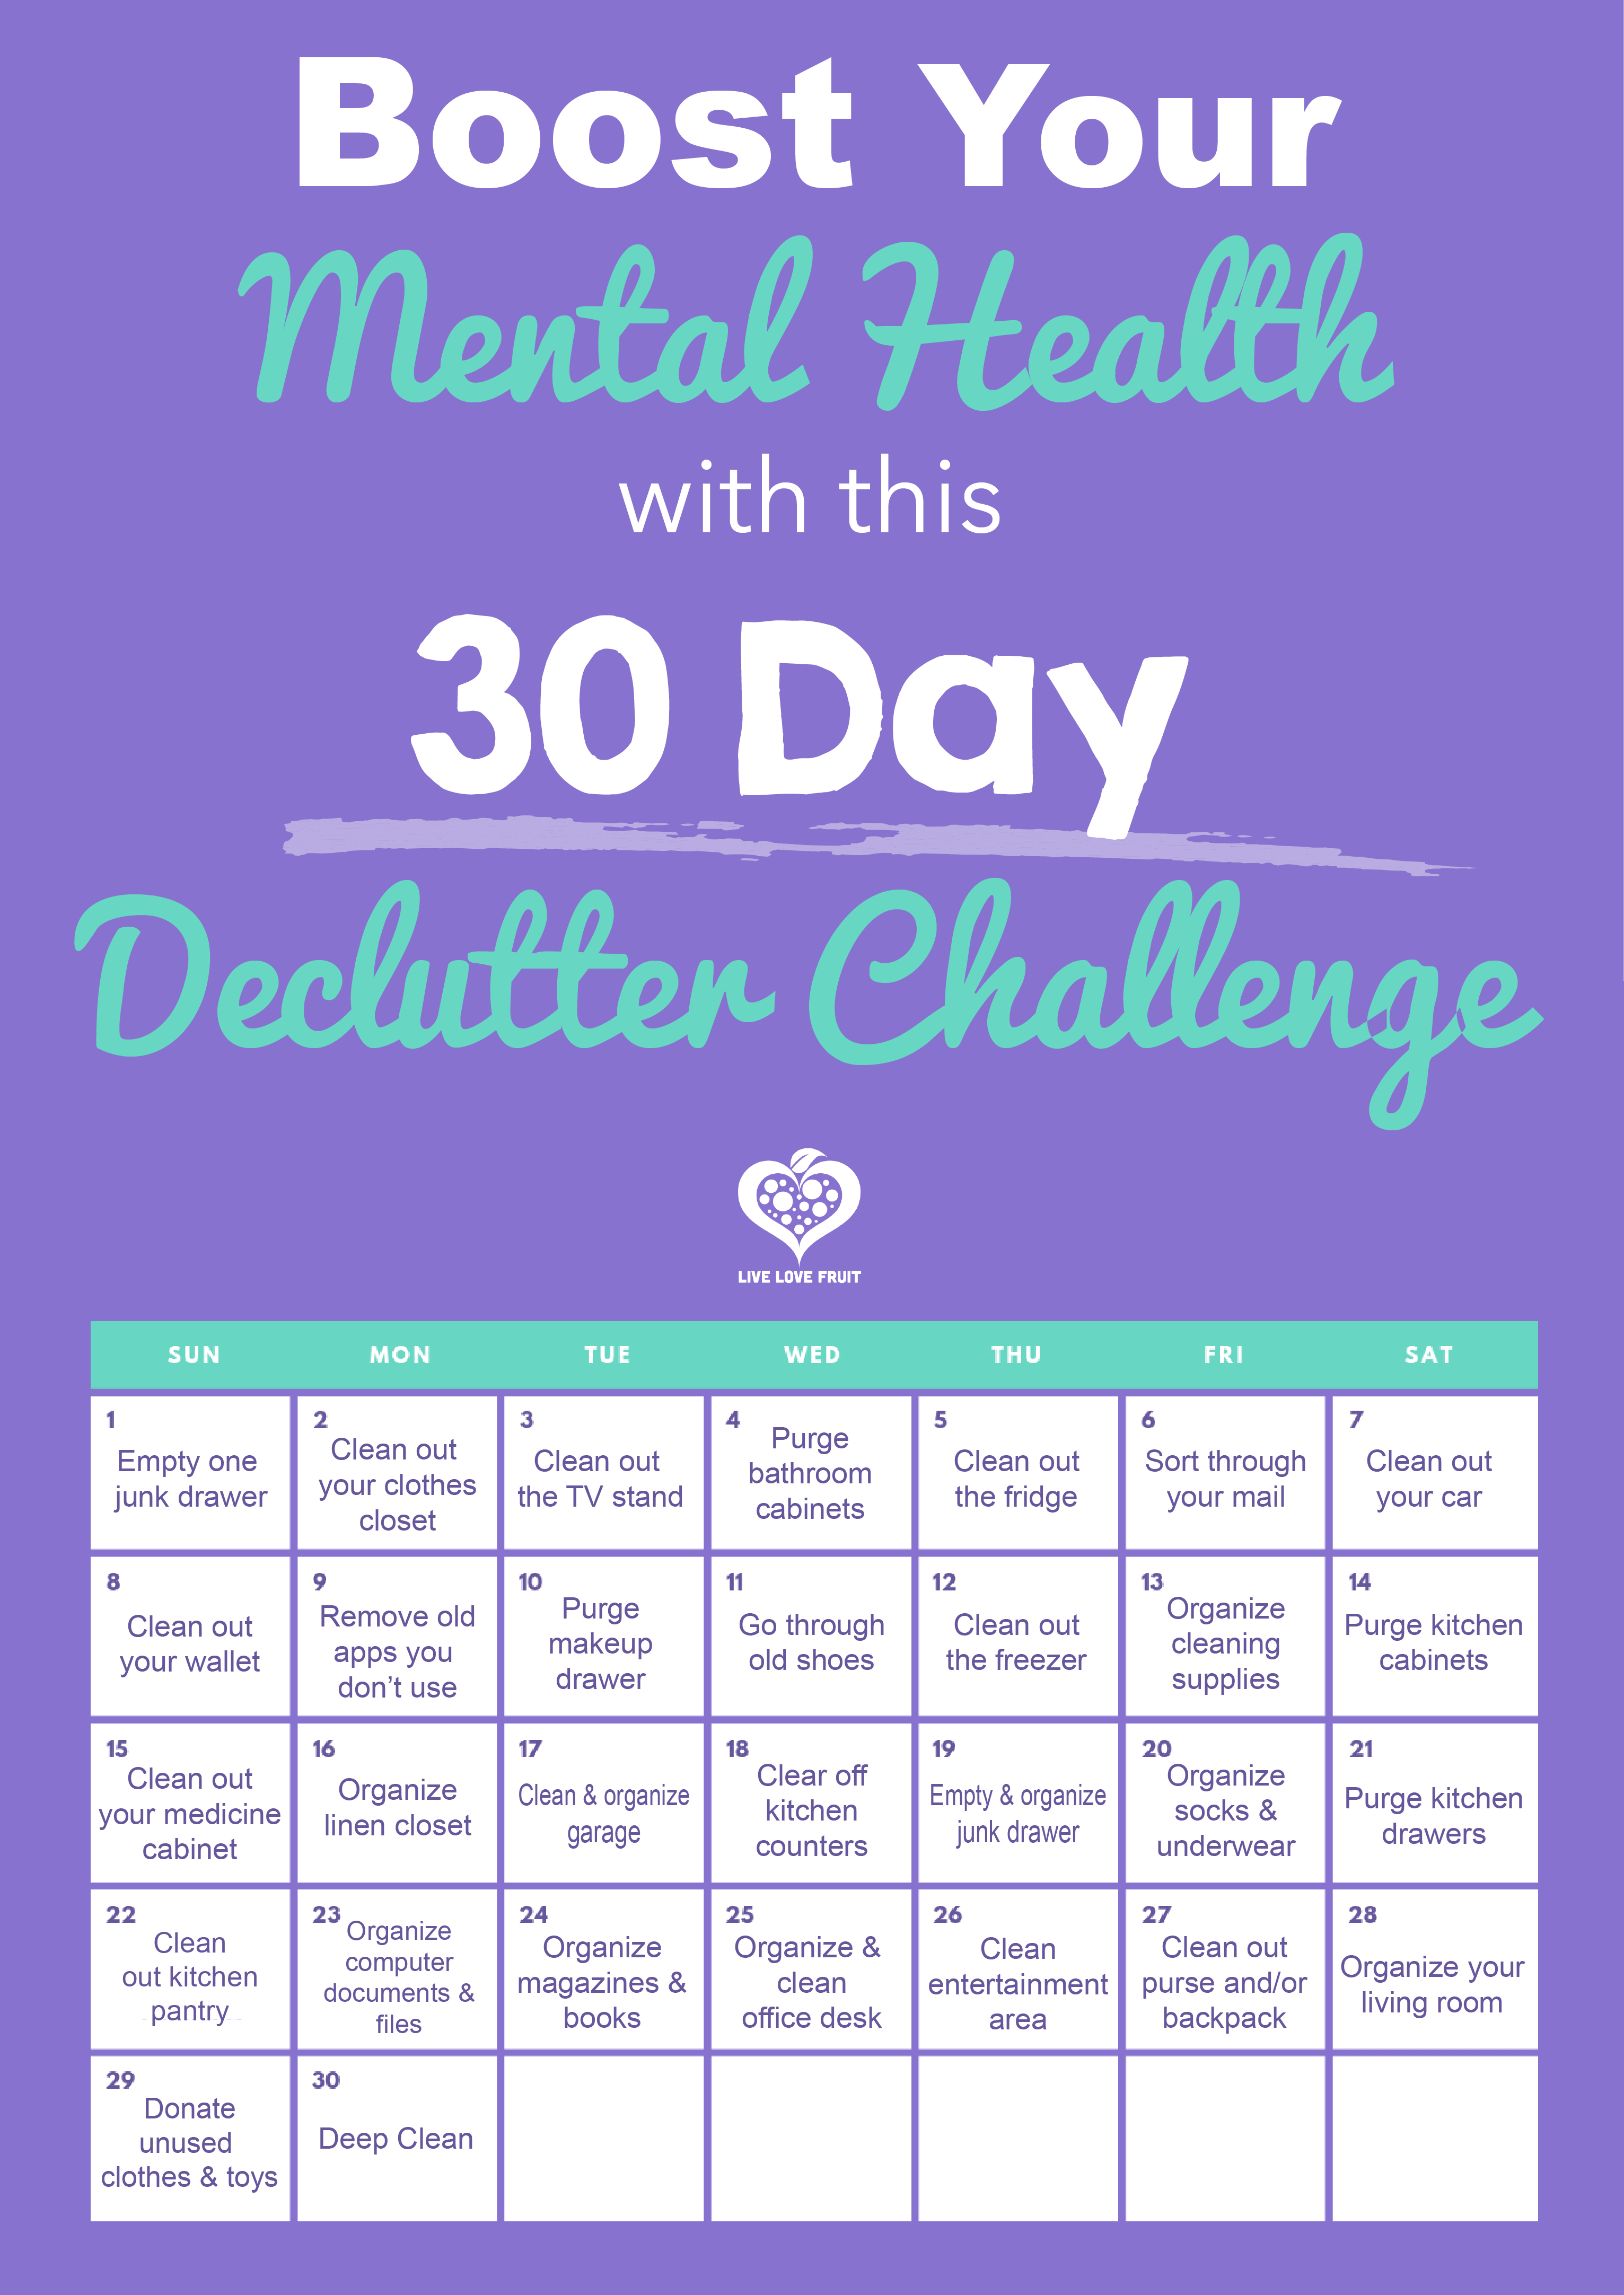 Being organized and clutter-free can help your life flow easier, and improve your mental health. Take this 30 day declutter challenge to help you do so.